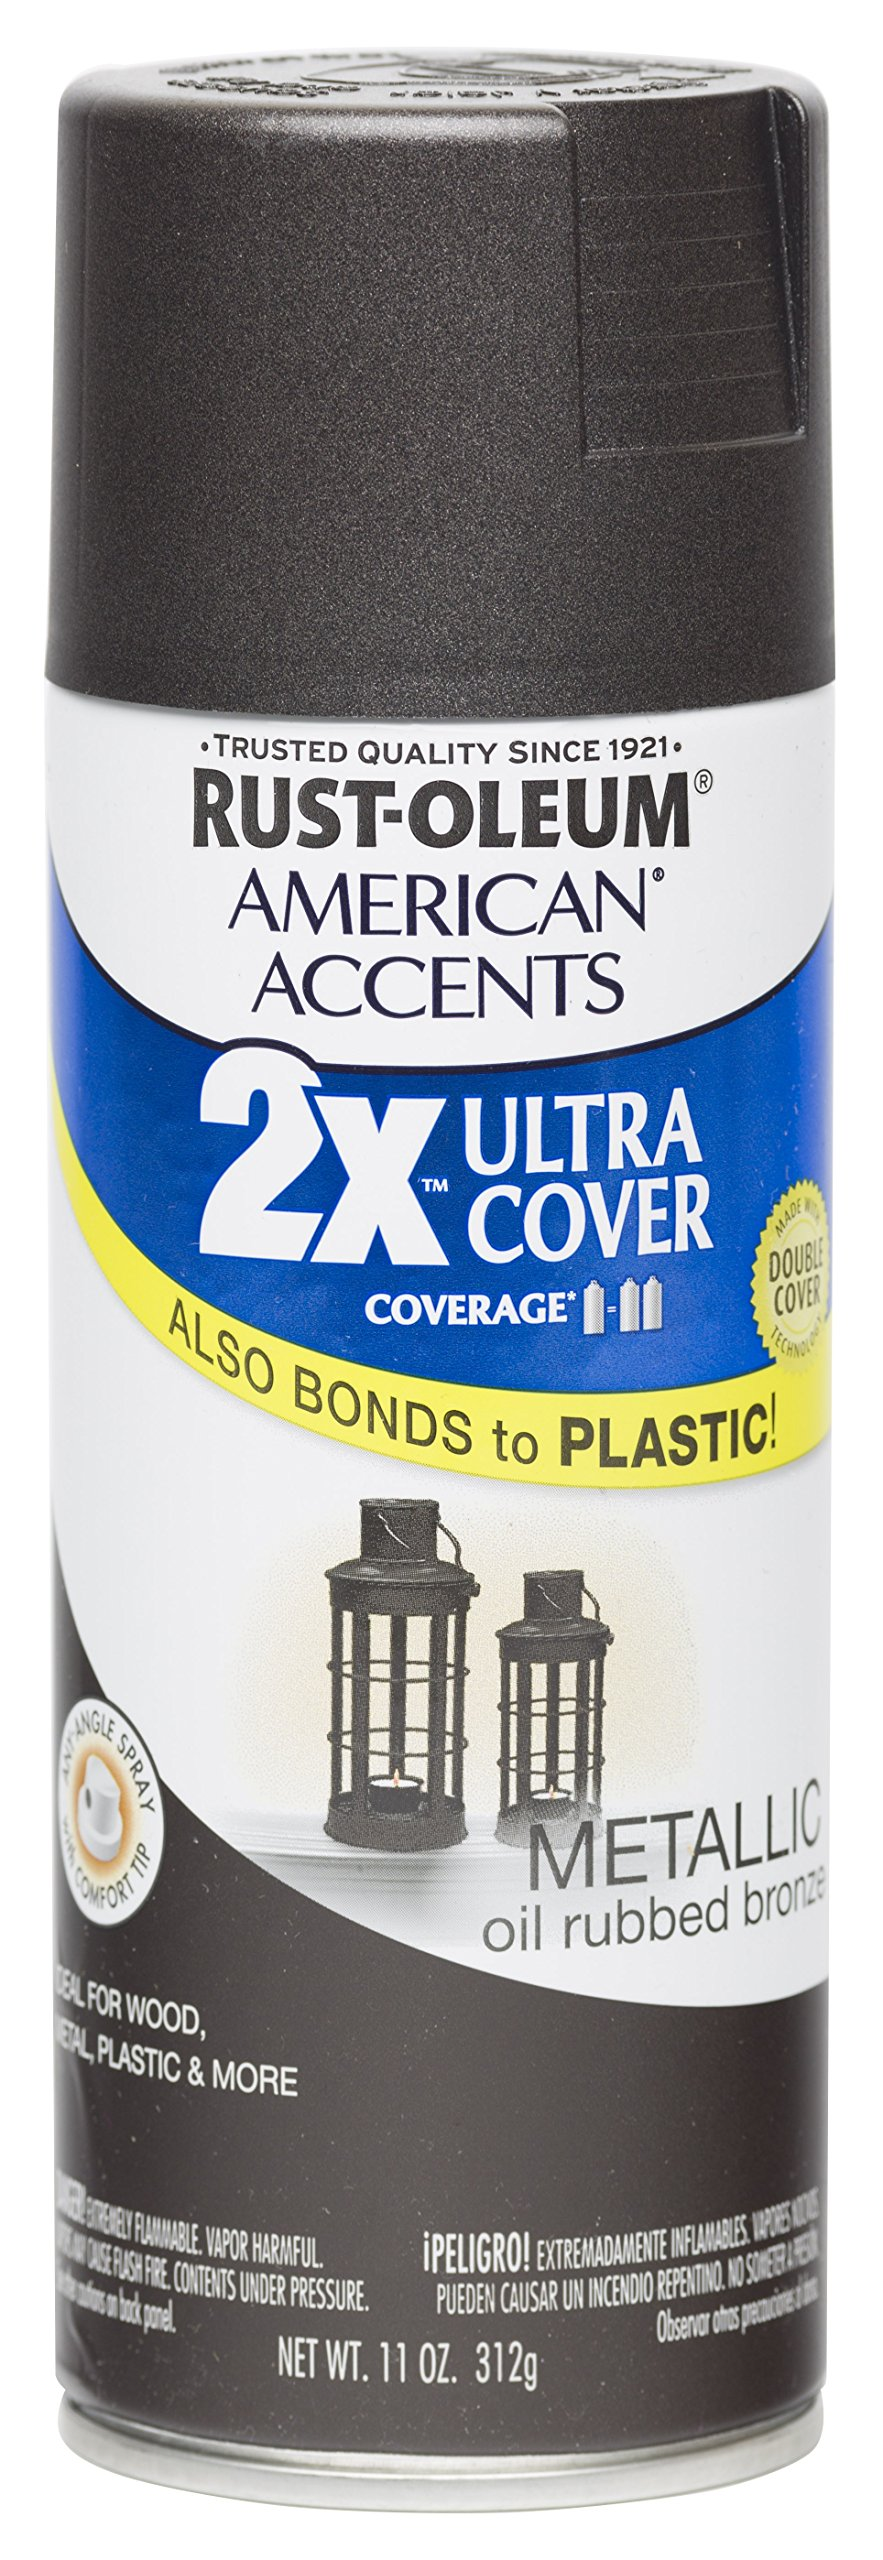 Rust Oleum 280685 American Accents Ultra Cover 2X Spray Paint, Oil Rubbed Bronze, 11-Ounce